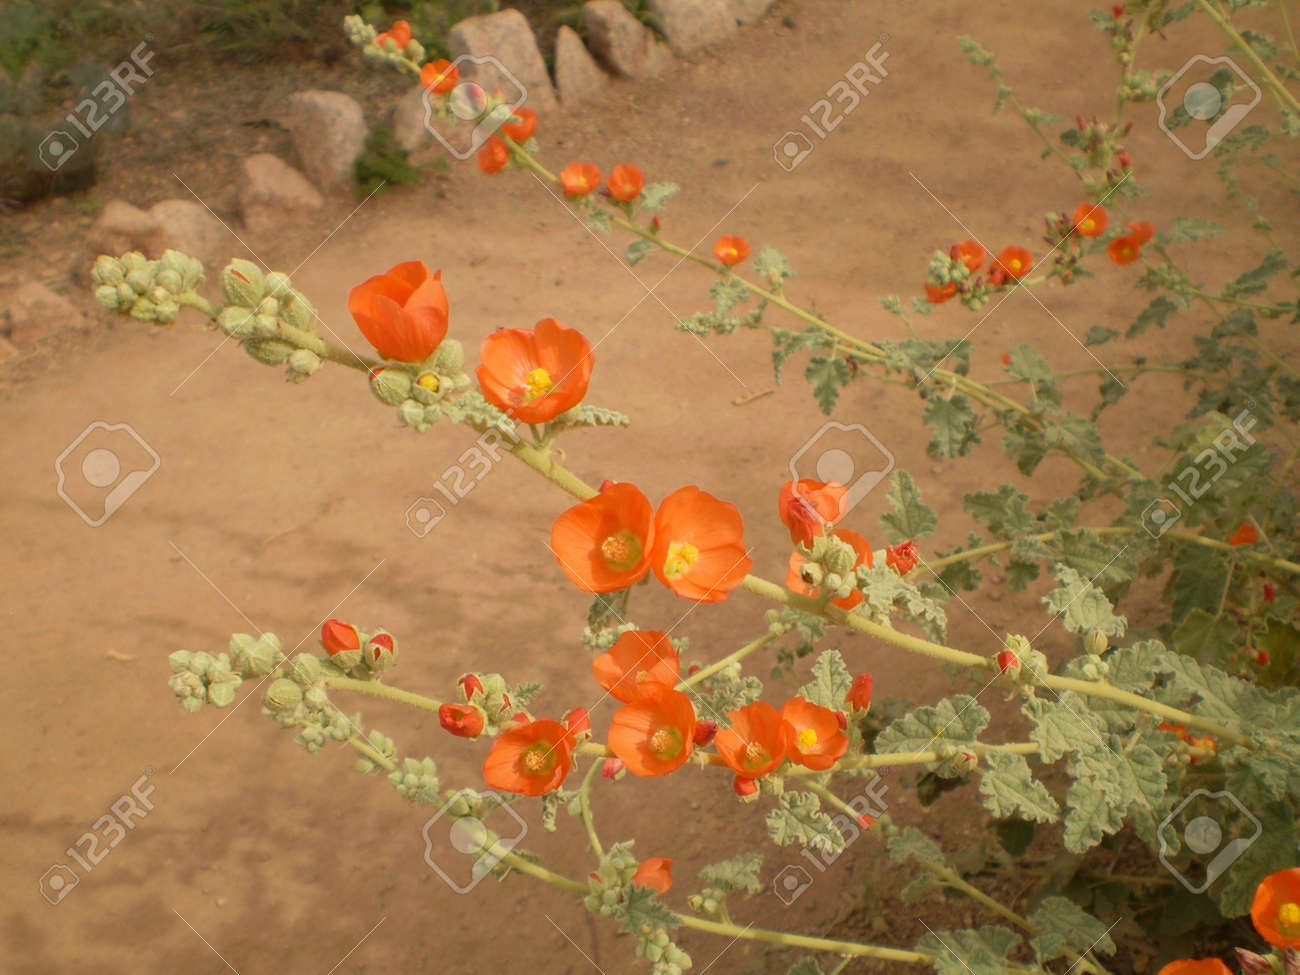 orange desert flowers stock photo picture and royalty free image